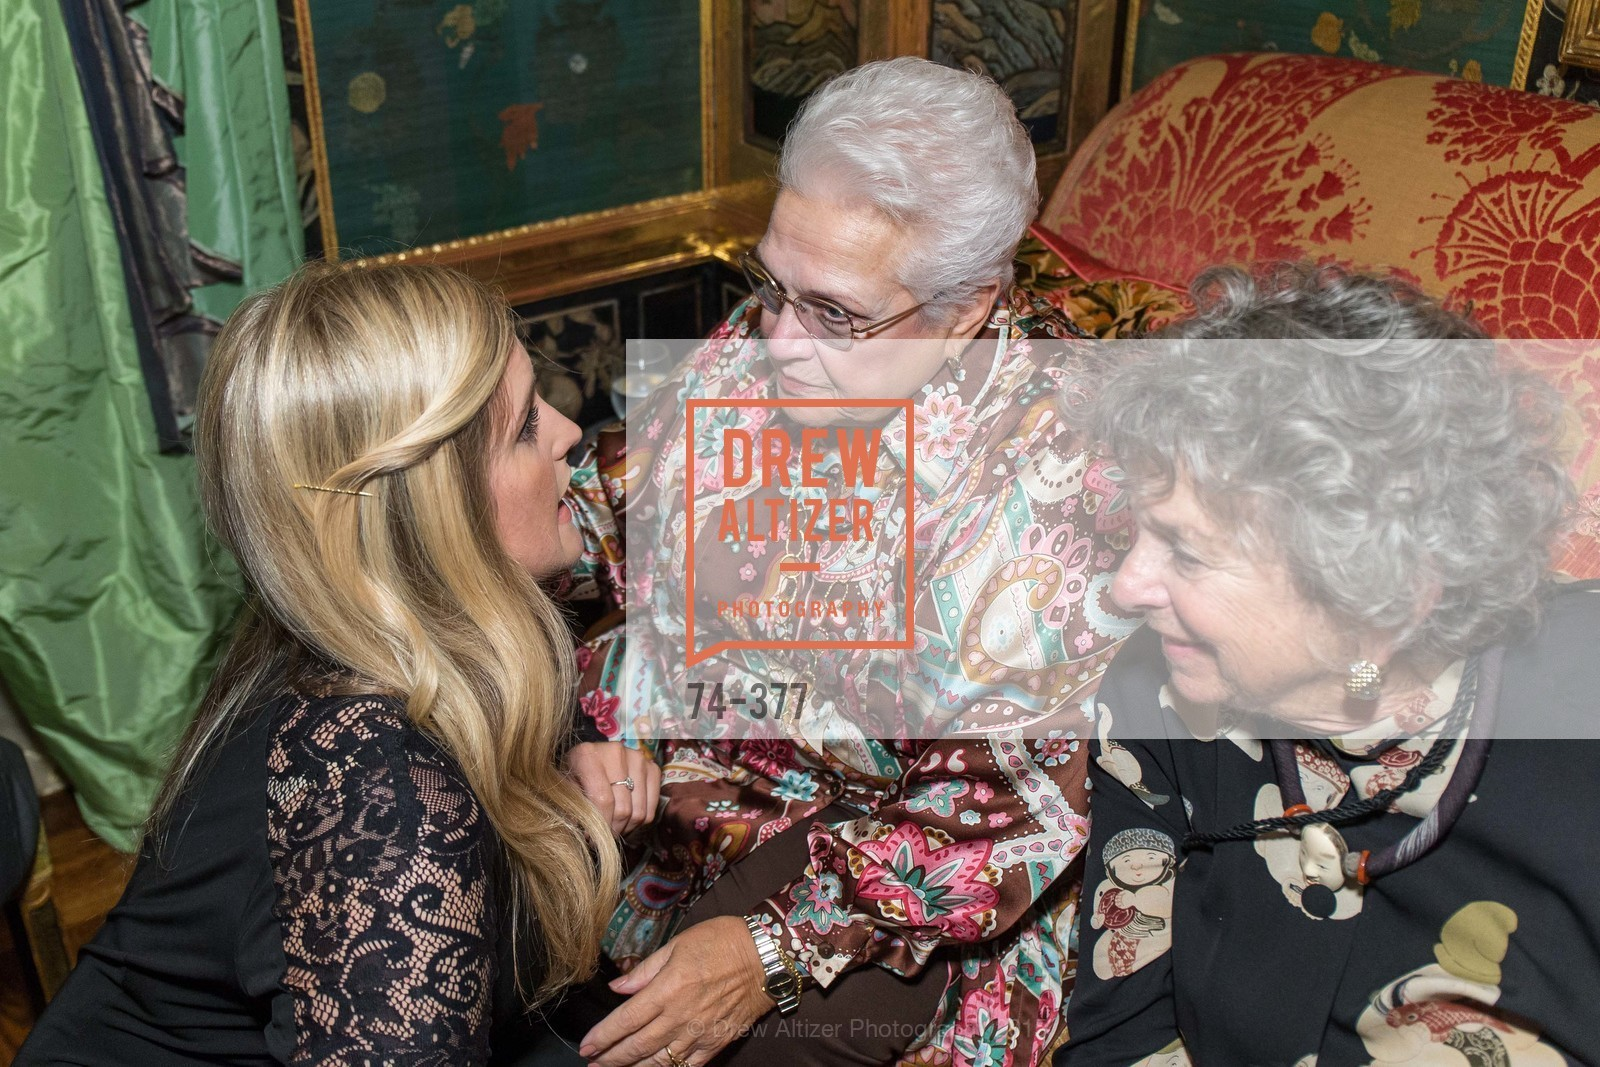 Julie Adams, Marilyn Horne, Delia Ehrlich, Getty Host SF Conservatory of Music with Marilyn Horne, Private Residence, October 15th, 2015,Drew Altizer, Drew Altizer Photography, full-service agency, private events, San Francisco photographer, photographer california